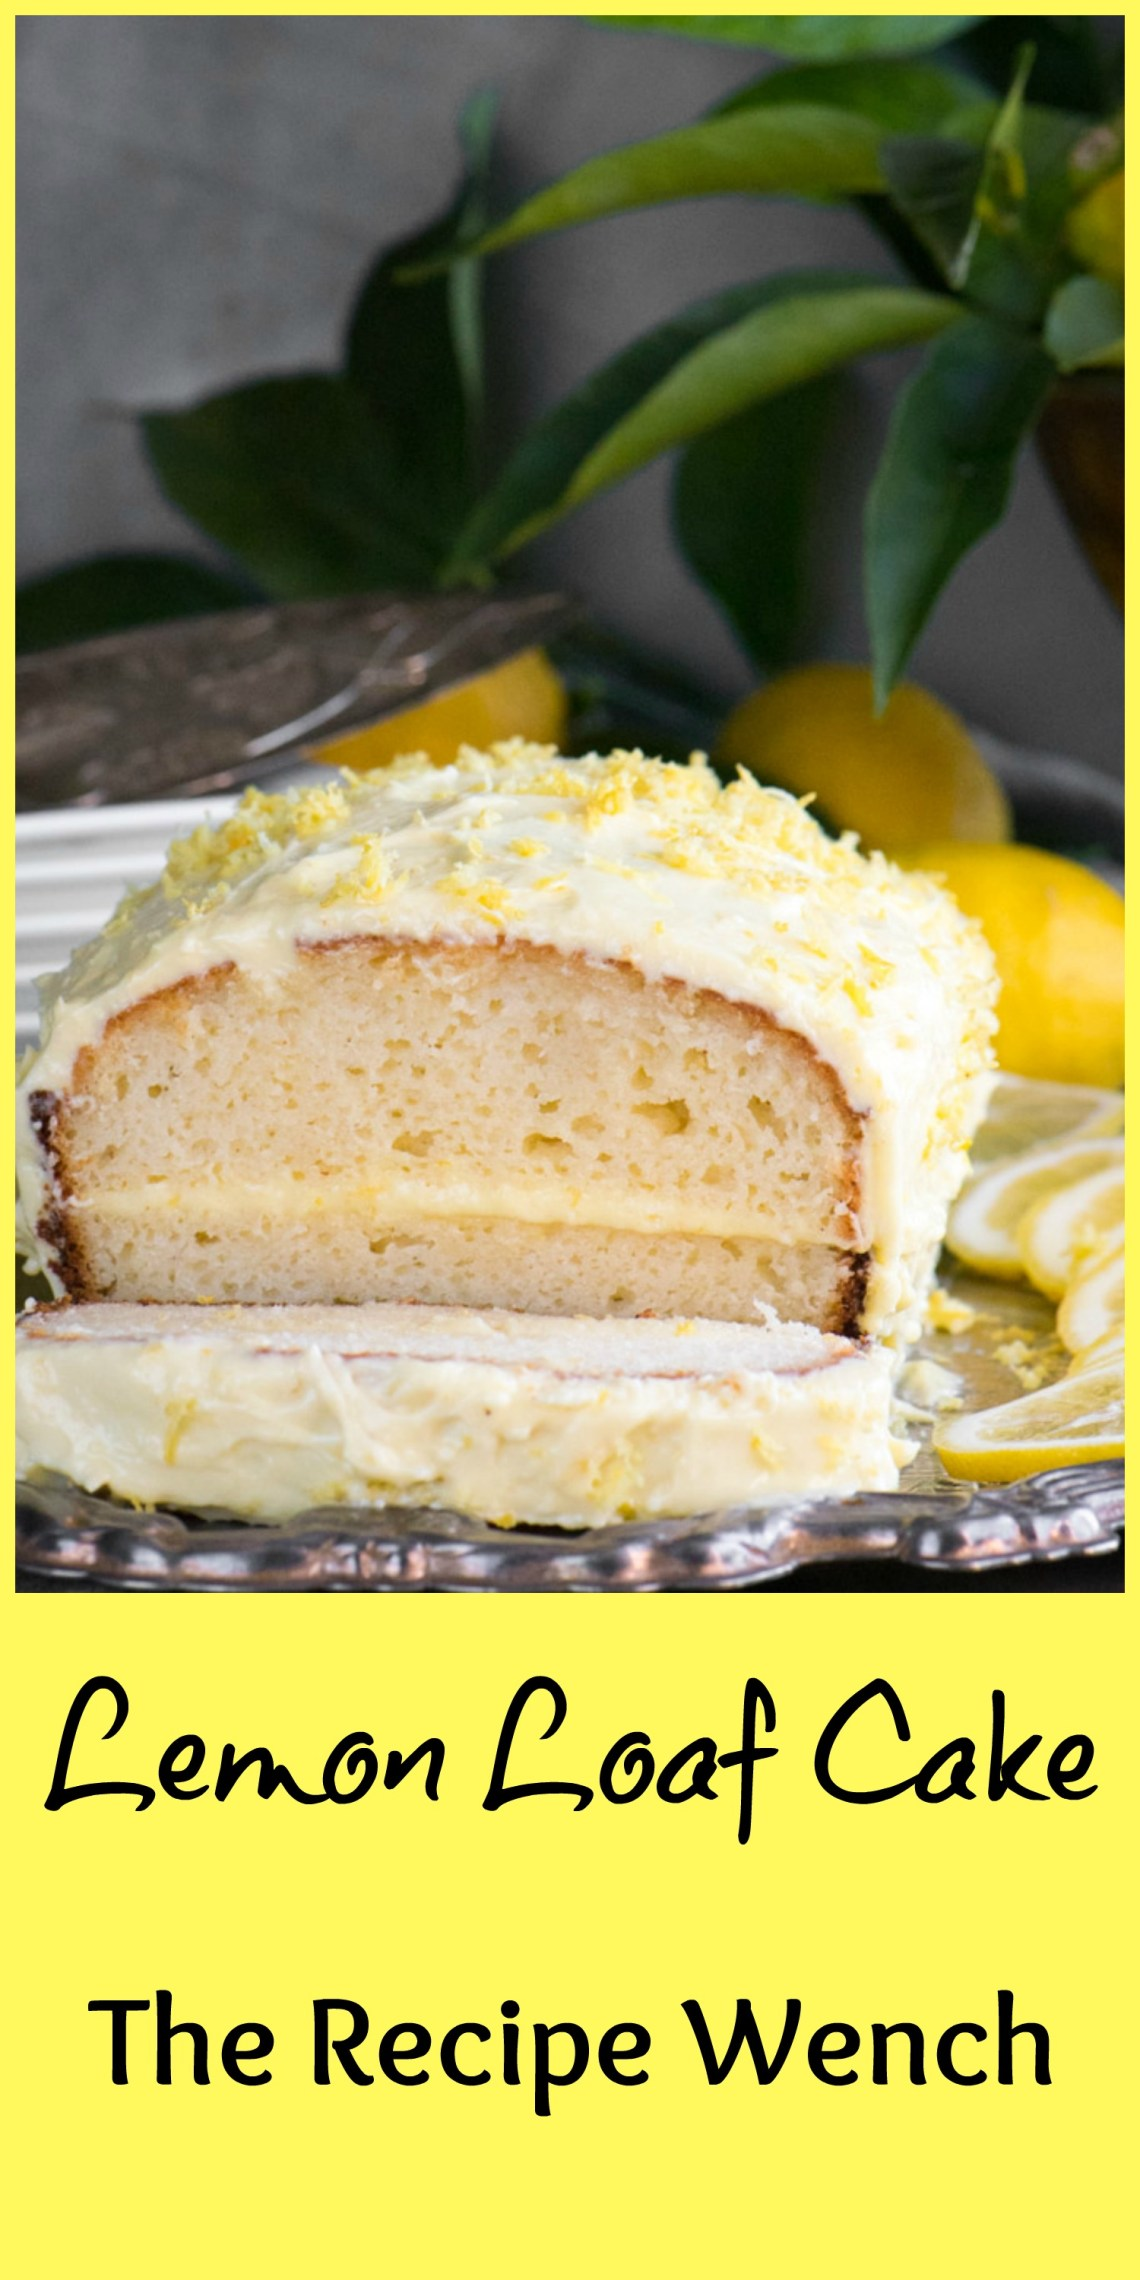 Lemon Loaf Cake PM